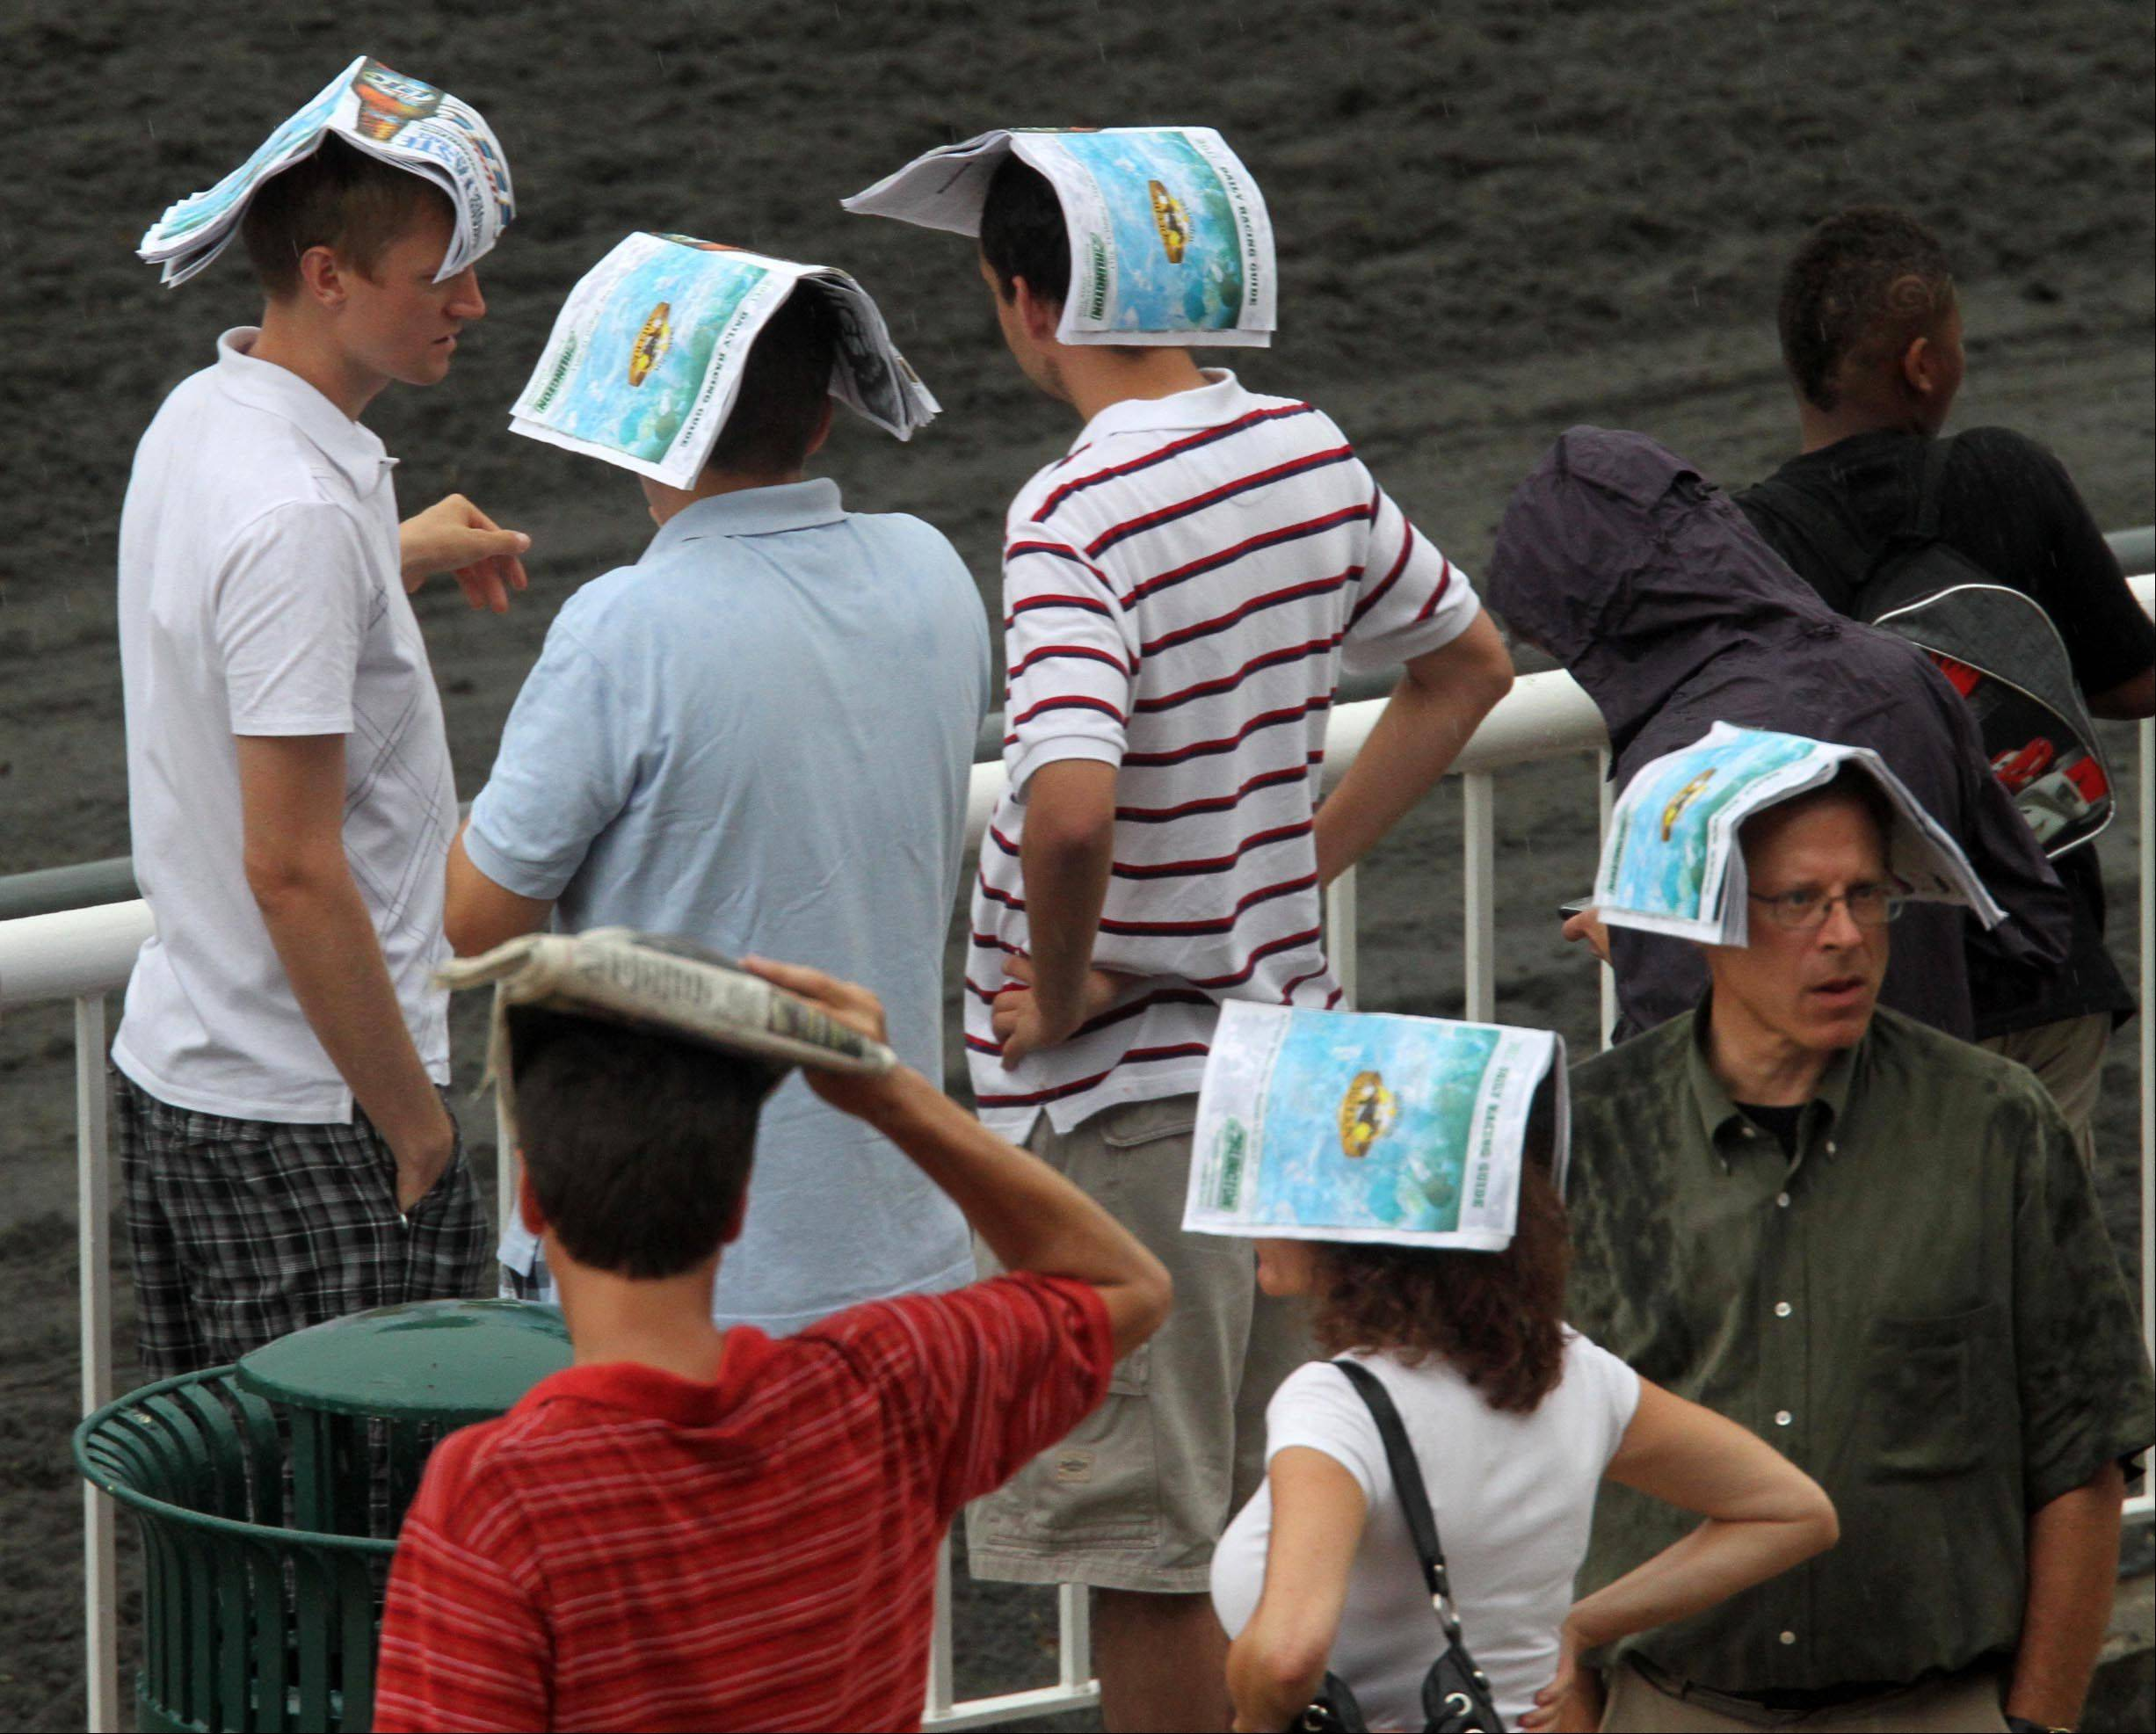 Race fans used their race guide as protection from the rain.